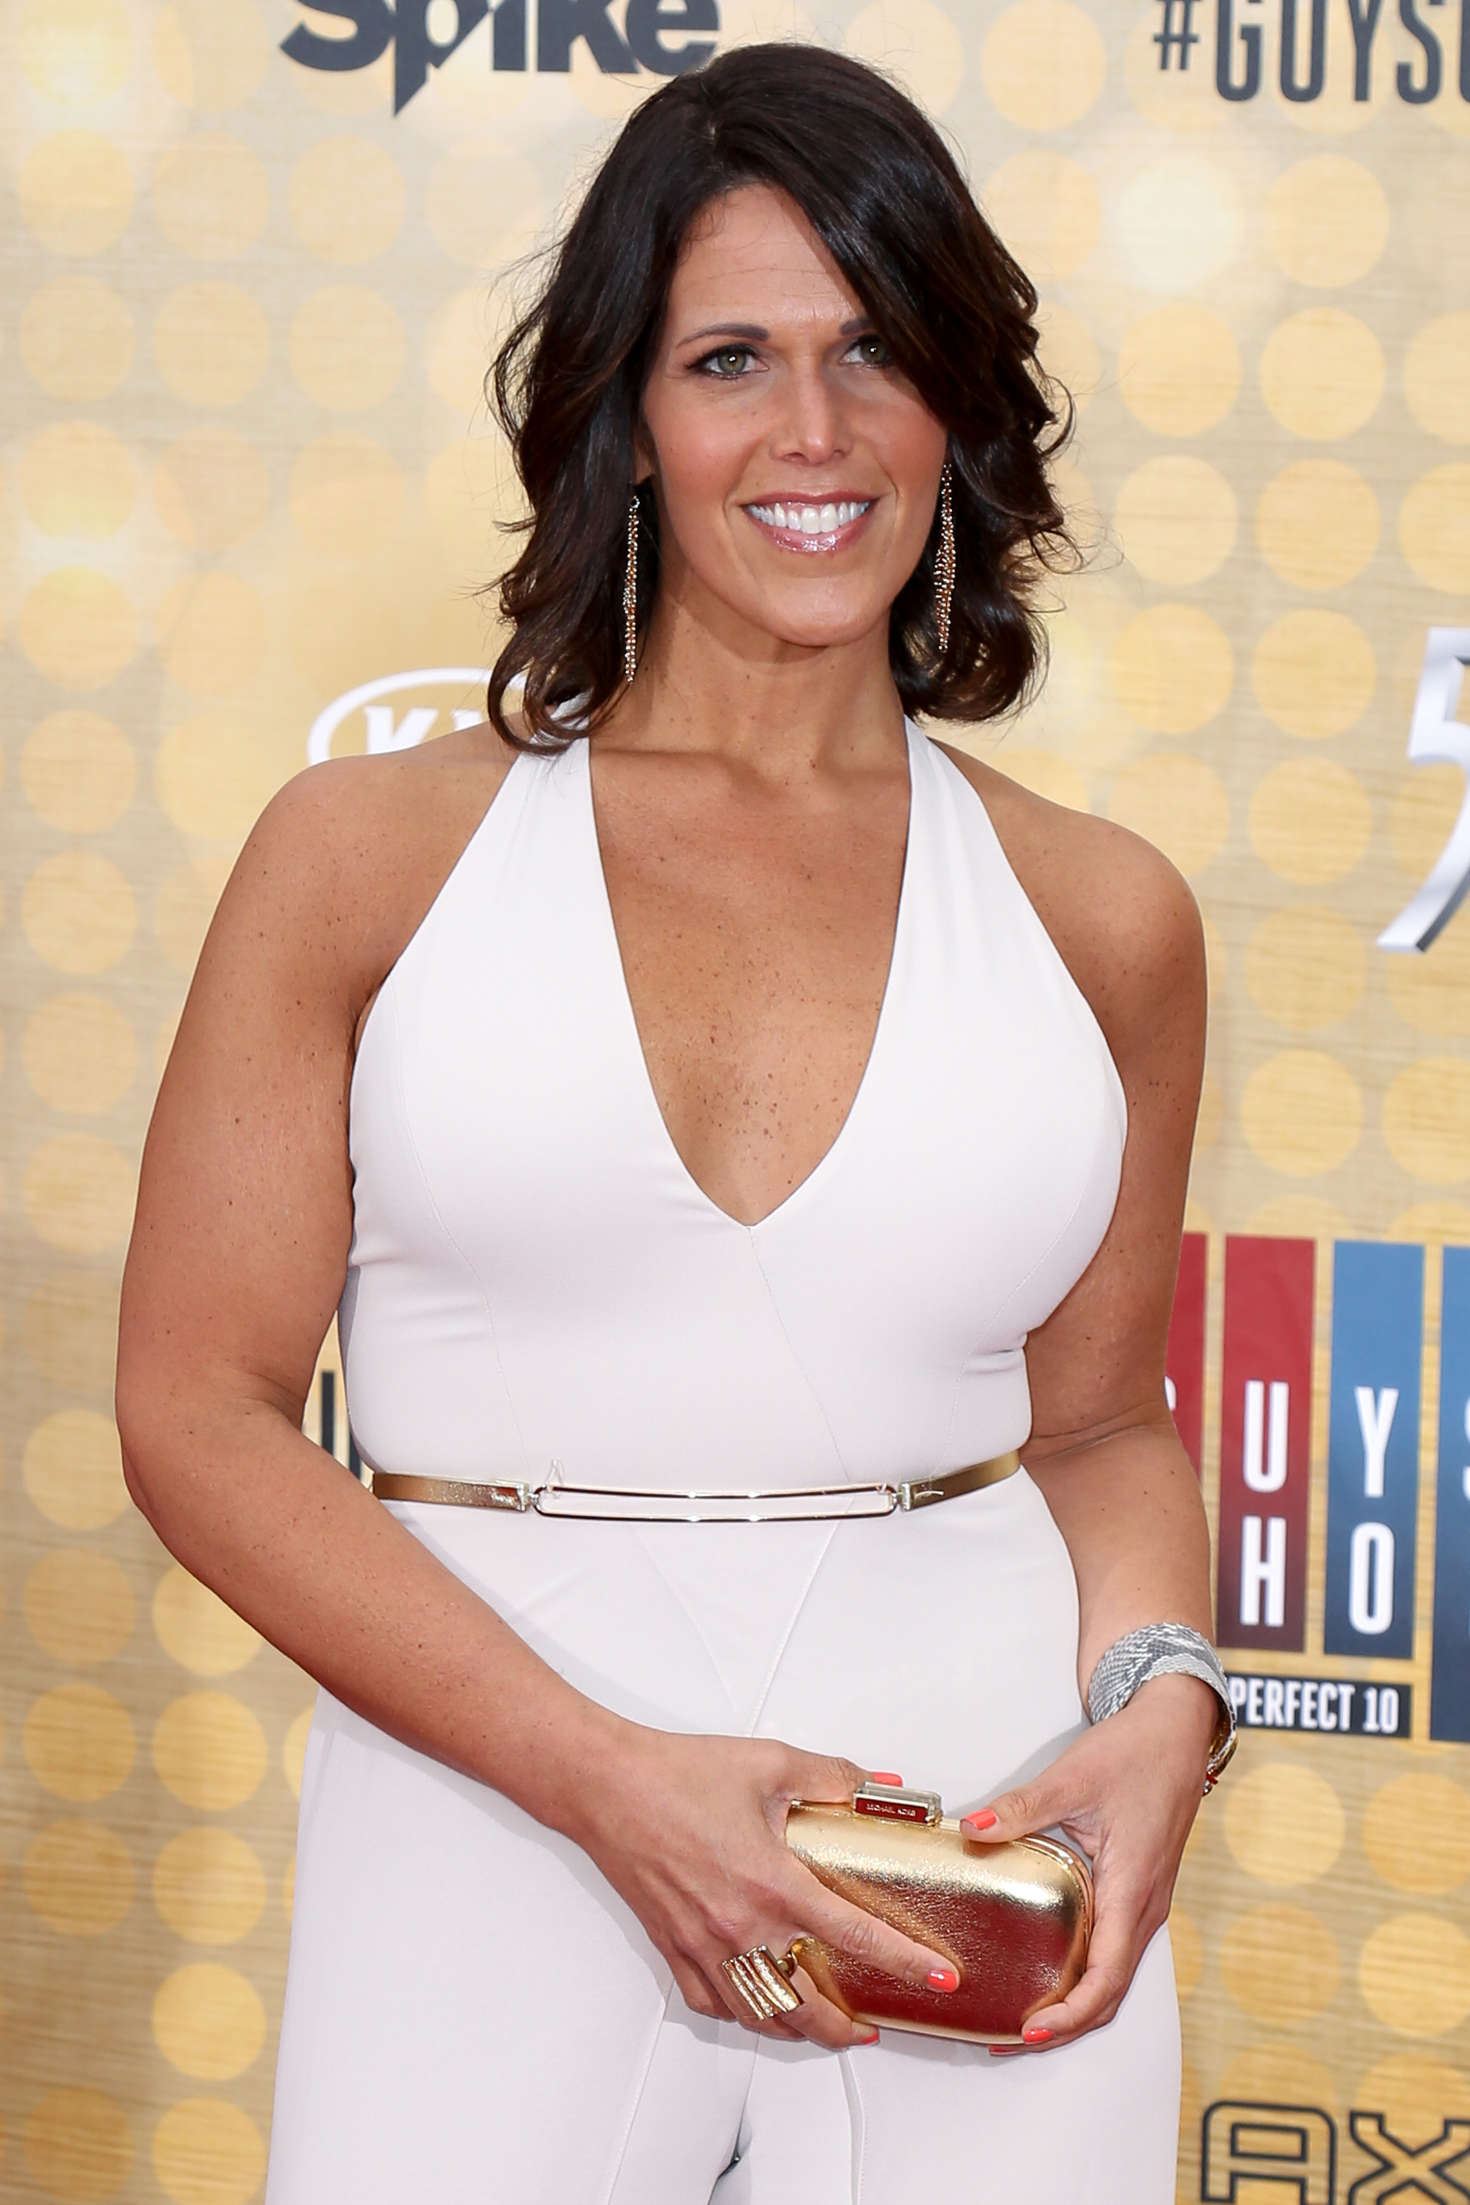 Dana Jacobson - Wikipedia